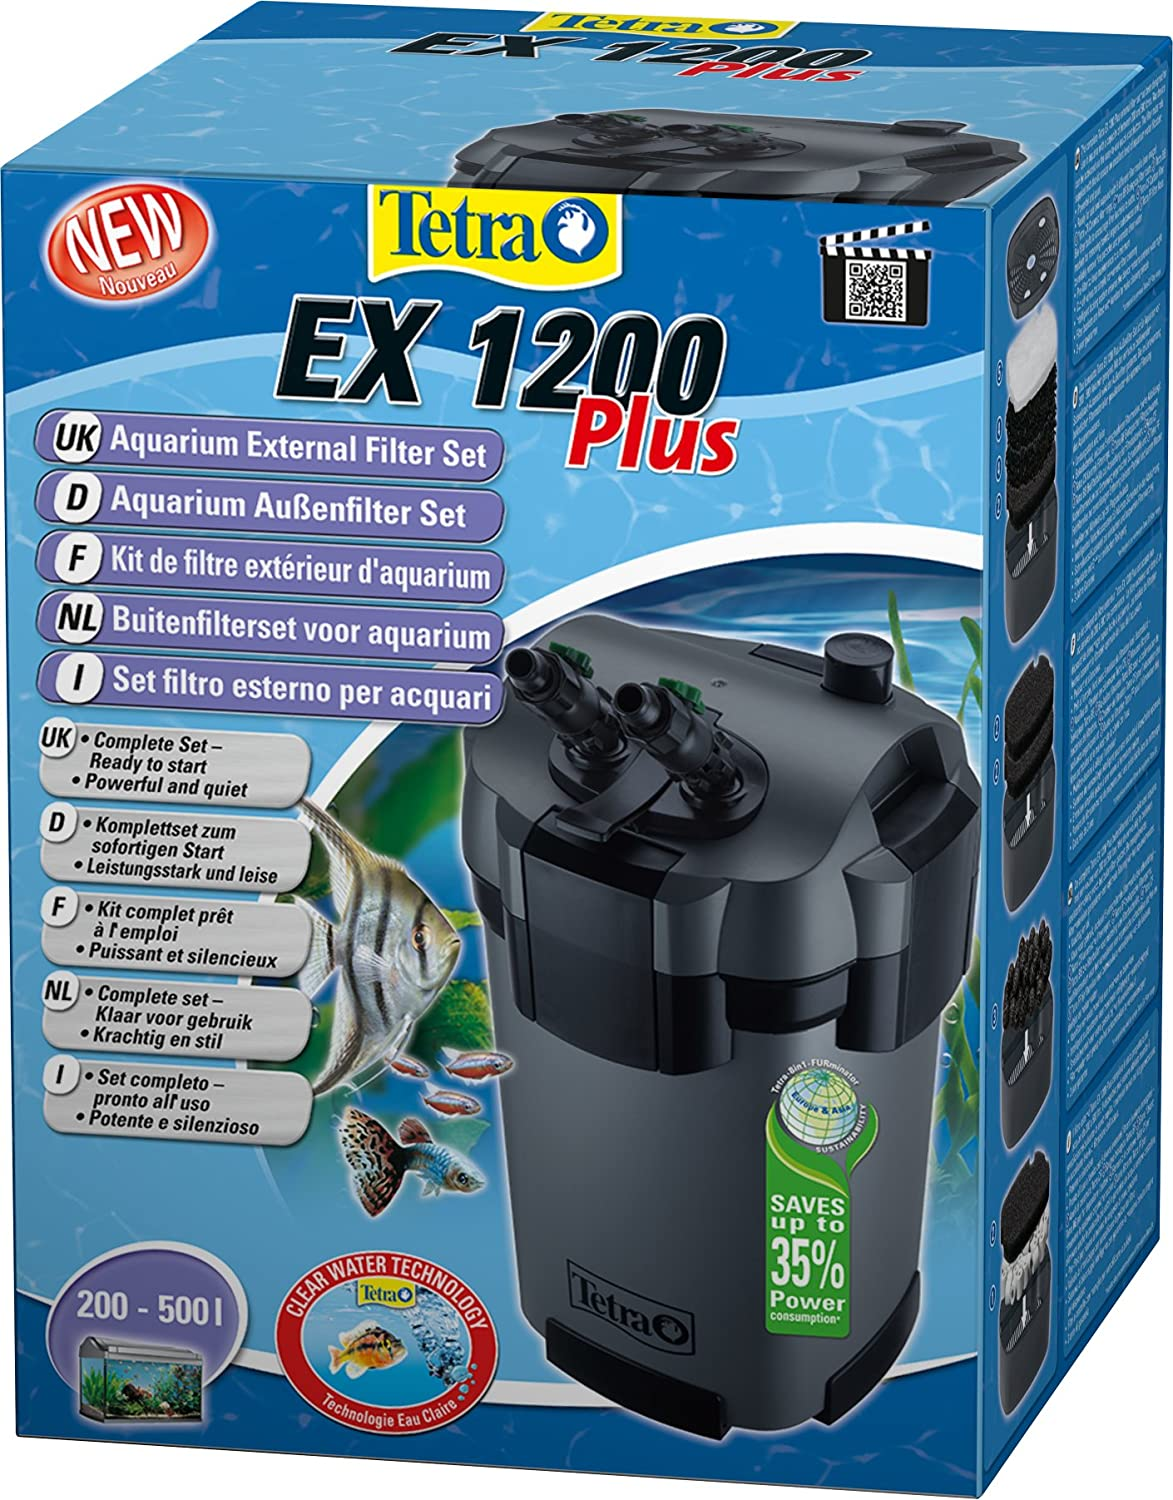 81 hGpfR69L._SL1500_ tetra tec ex 700 external filter amazon co uk pet supplies  at gsmportal.co